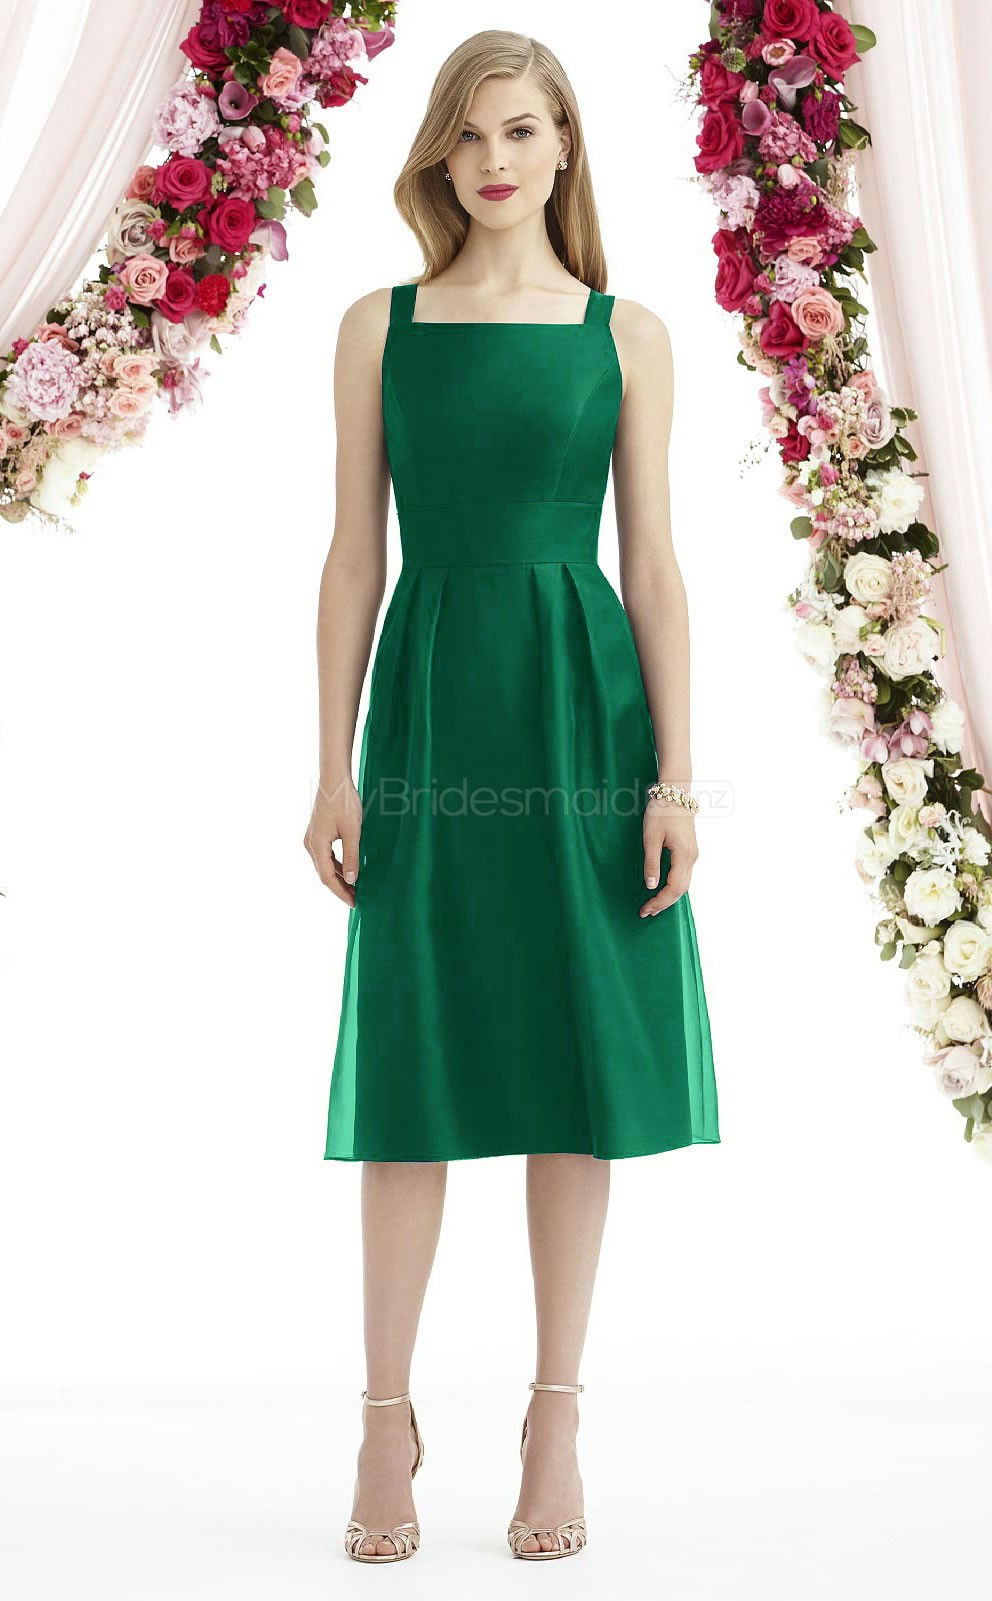 Bridesmaid dresses under 30 dollars gallery braidsmaid dress bridesmaid dresses under 100 mybridesmaids adult leather square tea length green a line bridesmaid dress bdnz1628 ombrellifo Gallery